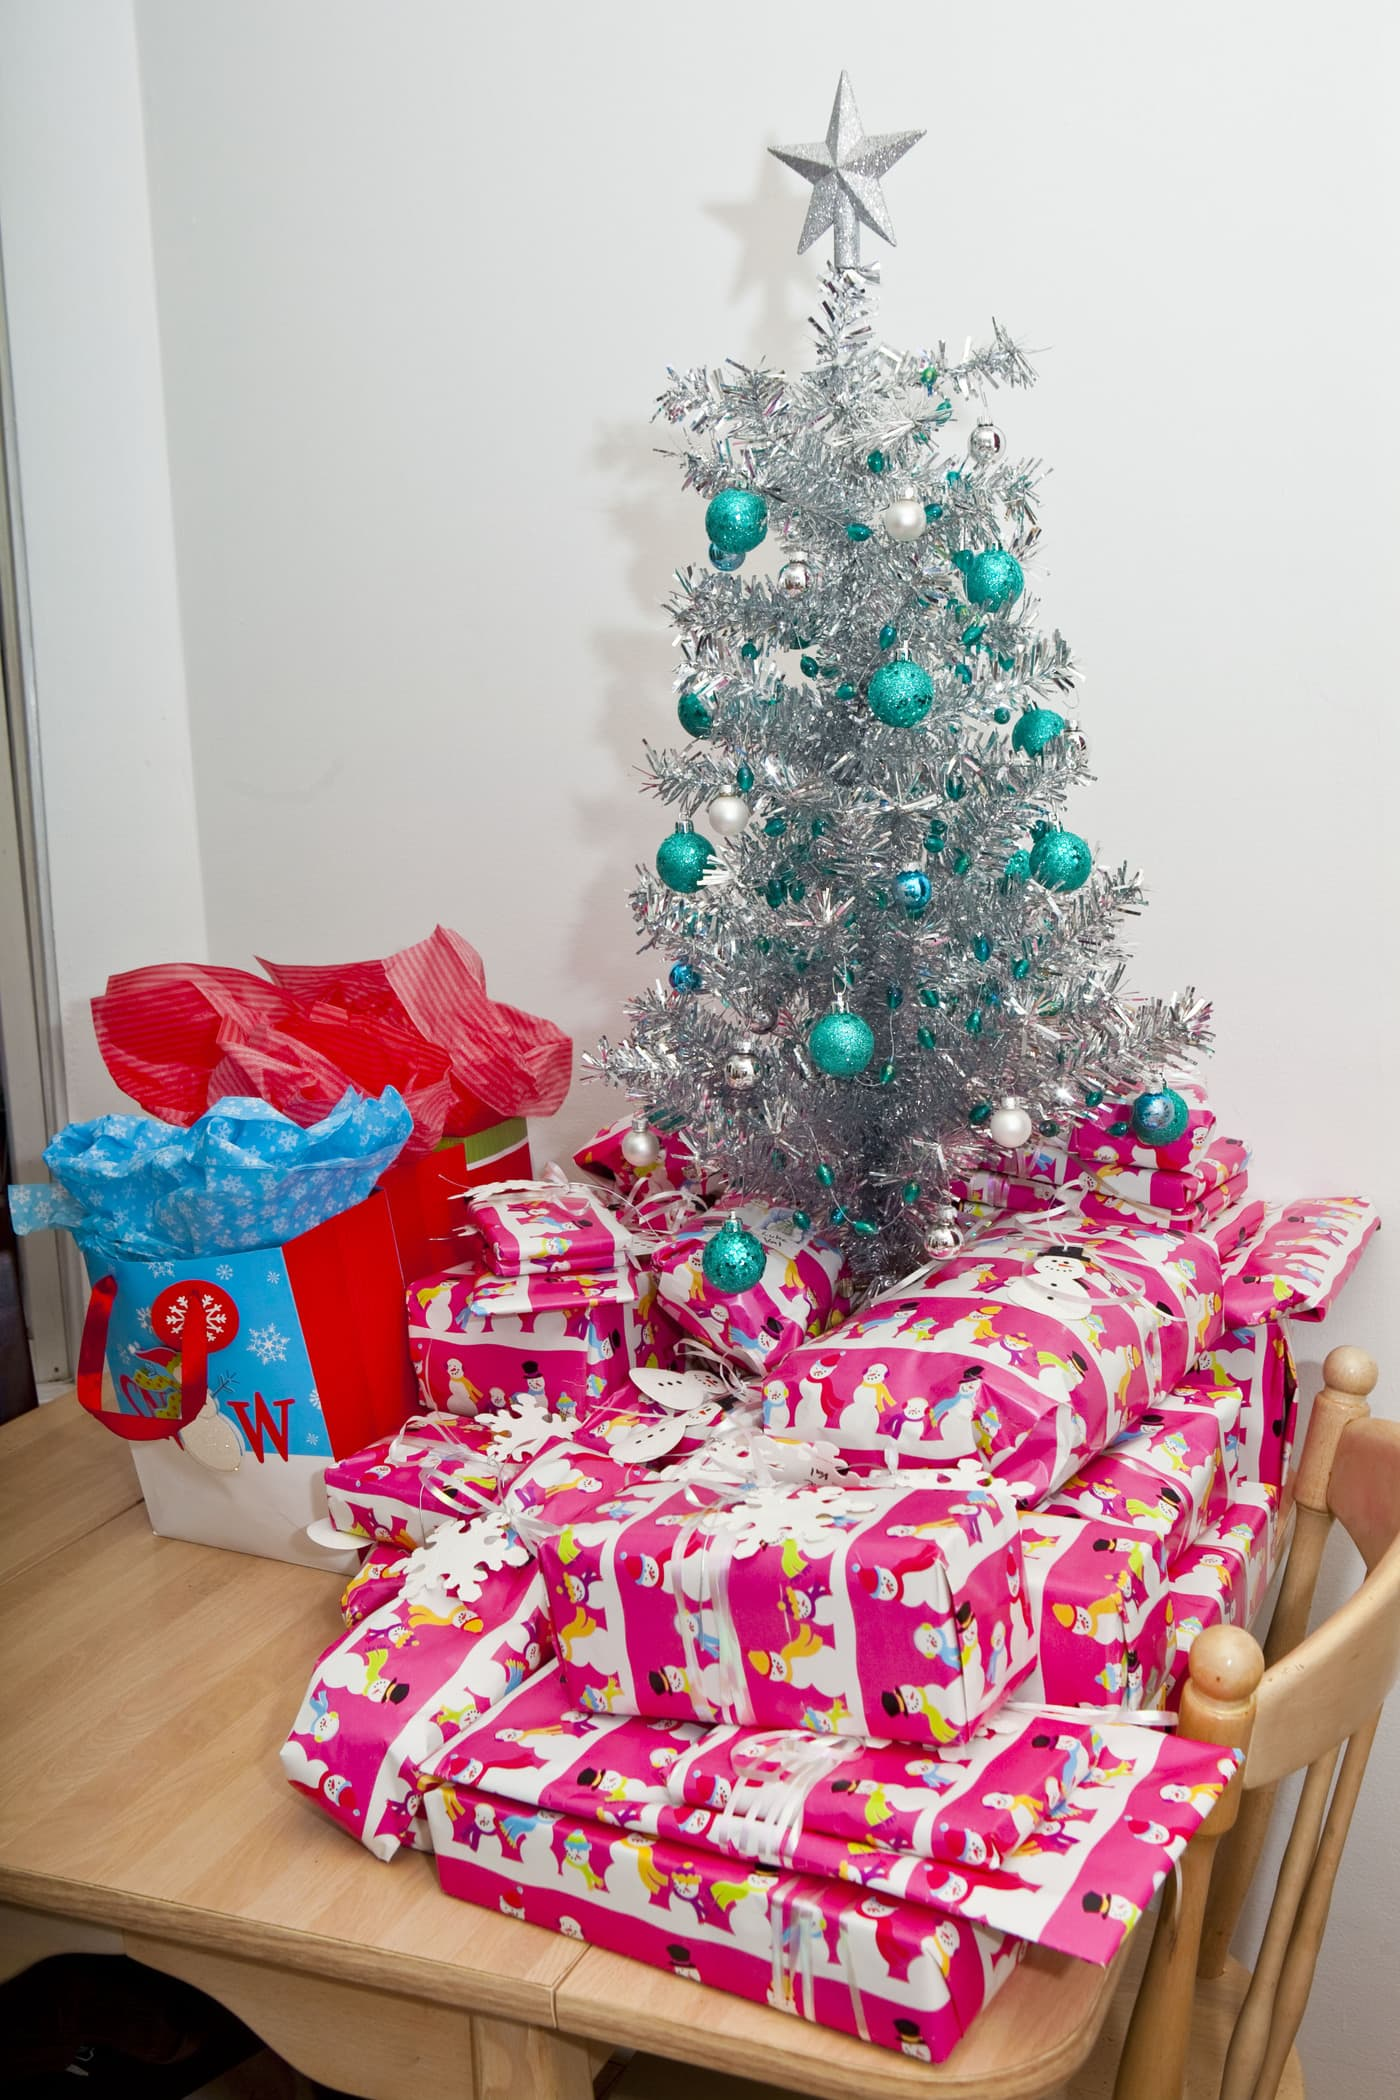 My Christmas tree is up and presents are wrapped.